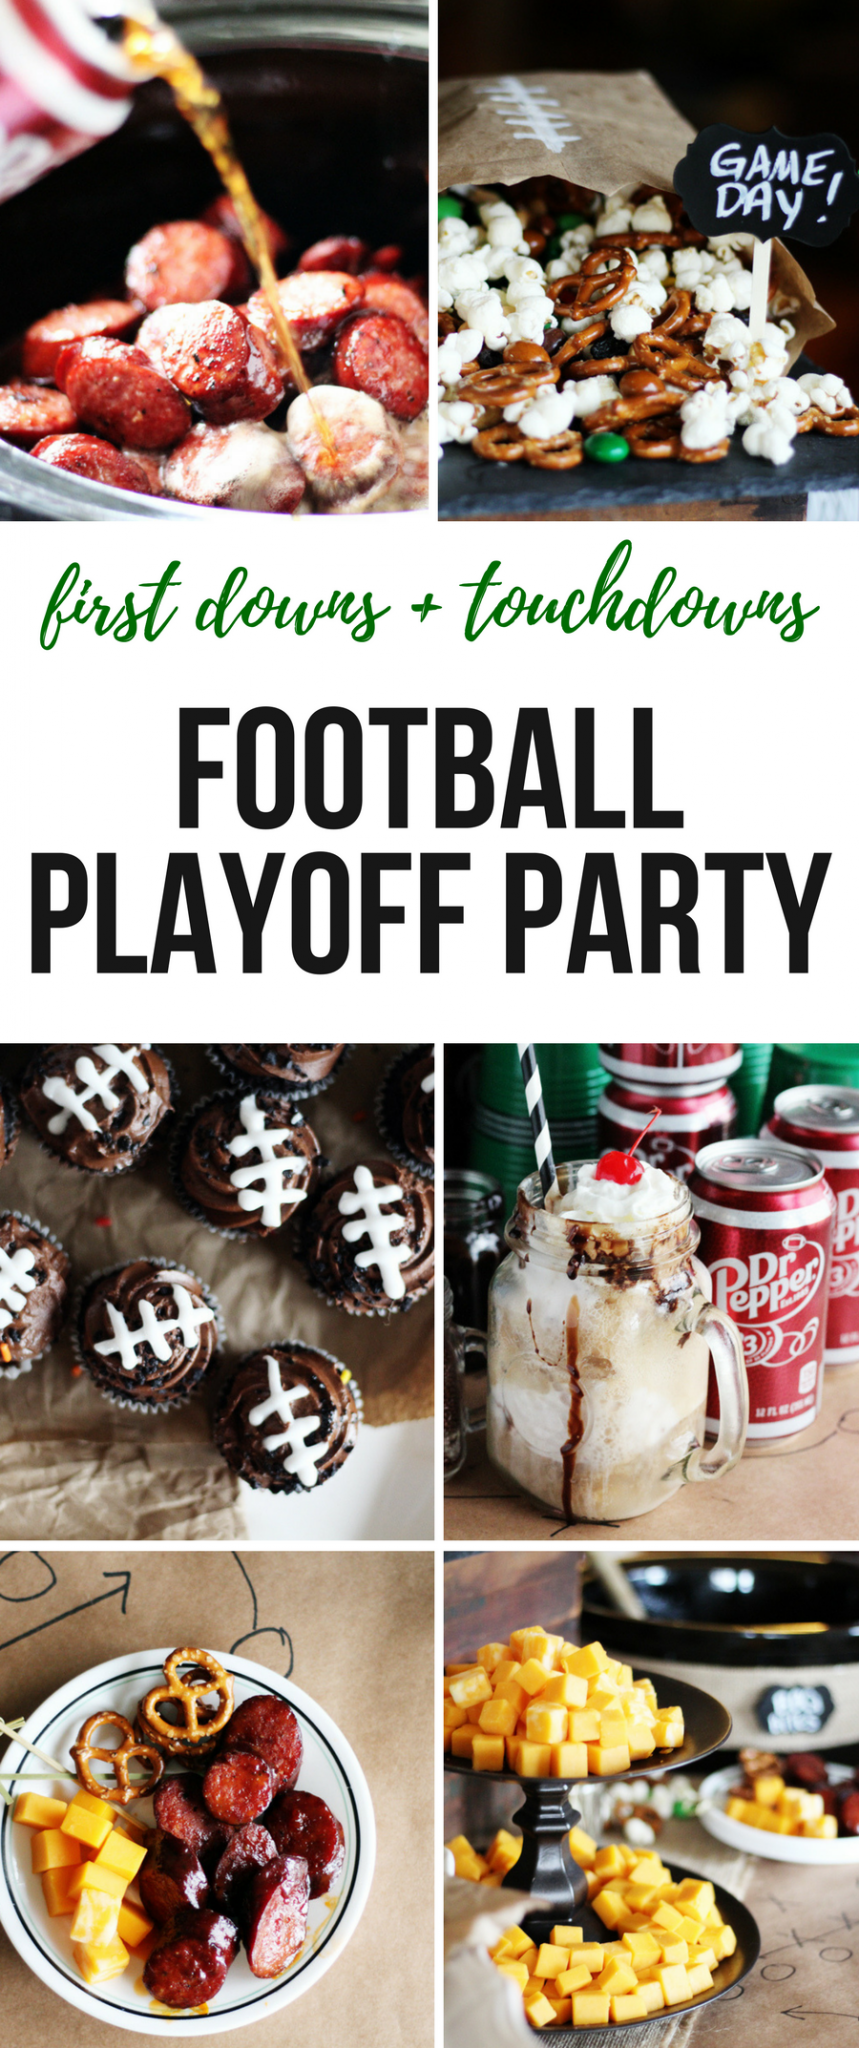 Football Playoff Party